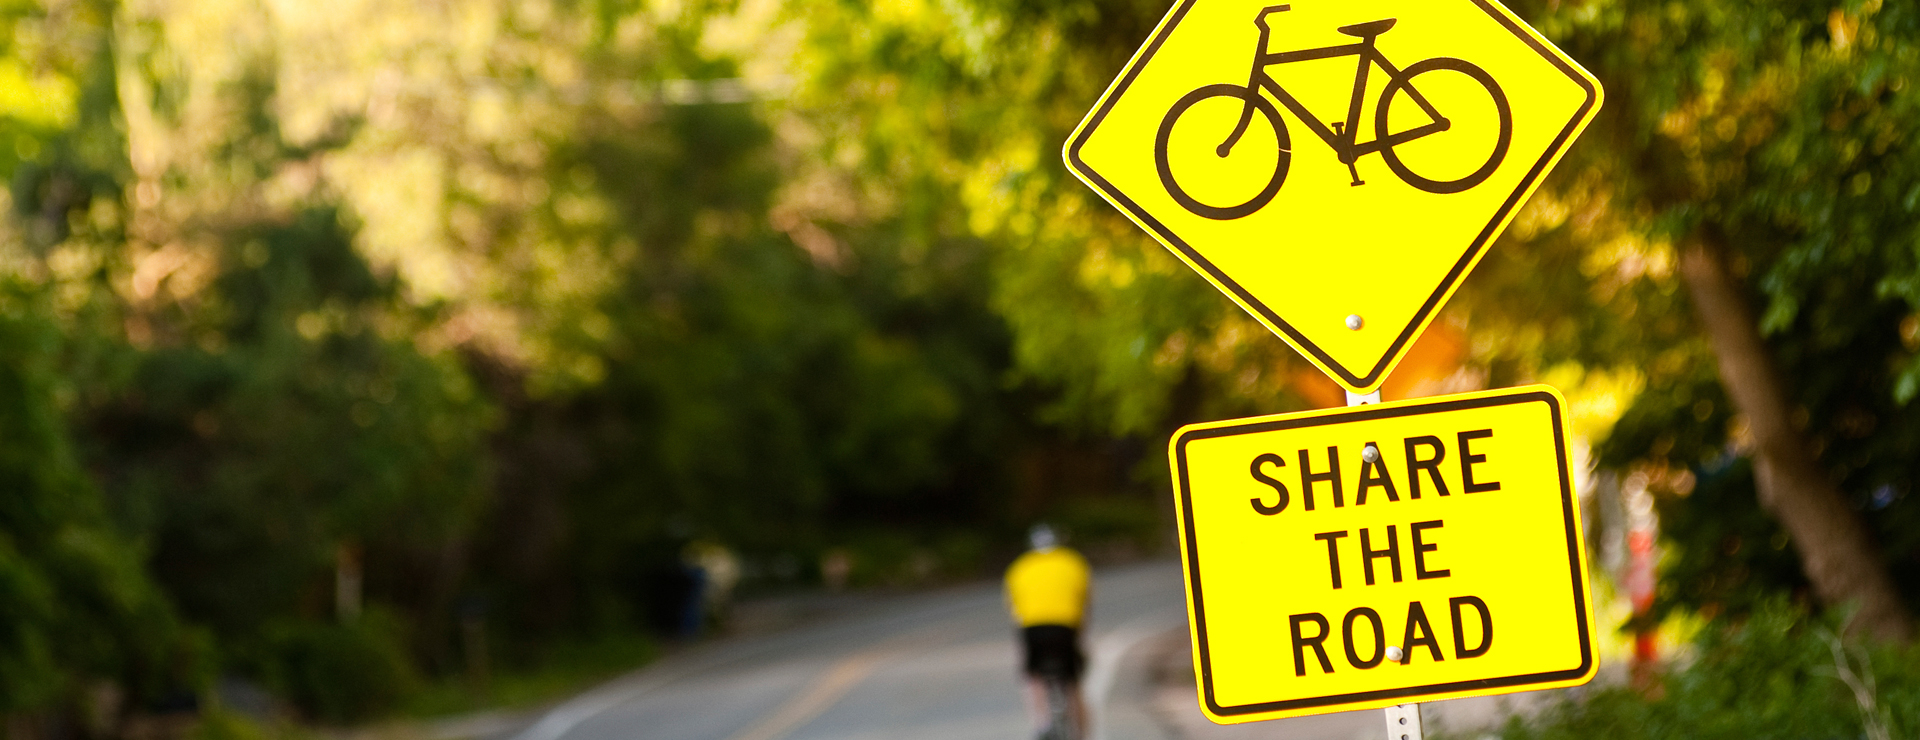 Bicycle Accident Attorney San Antonio Texas